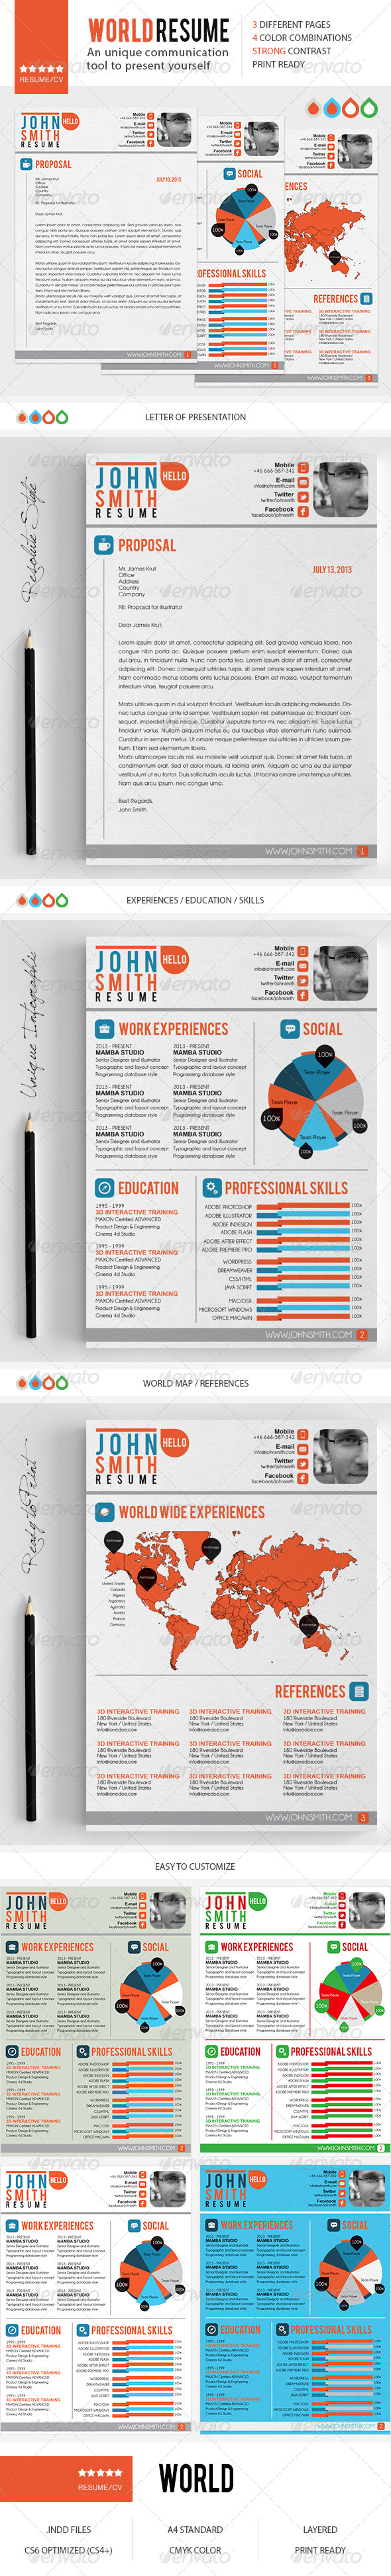 World Resume/CV - http://graphicriver.net/item/world-resumecv/5117218?WT.ac=search_thumb&WT.z_author=alpaaca